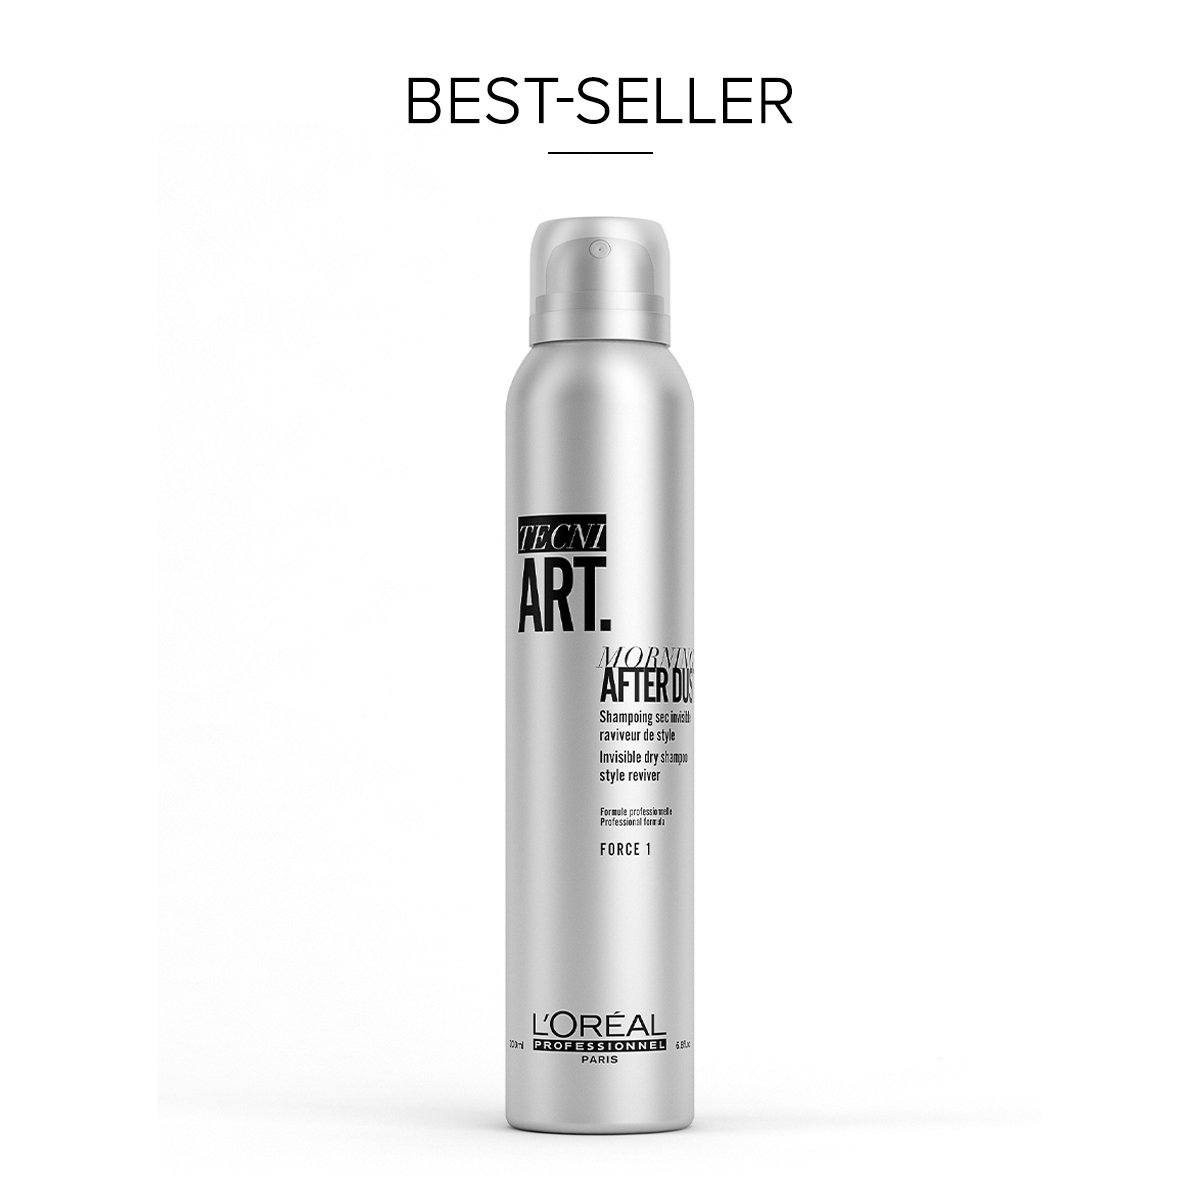 Tecniart Morning After Dust Dry Shampoo